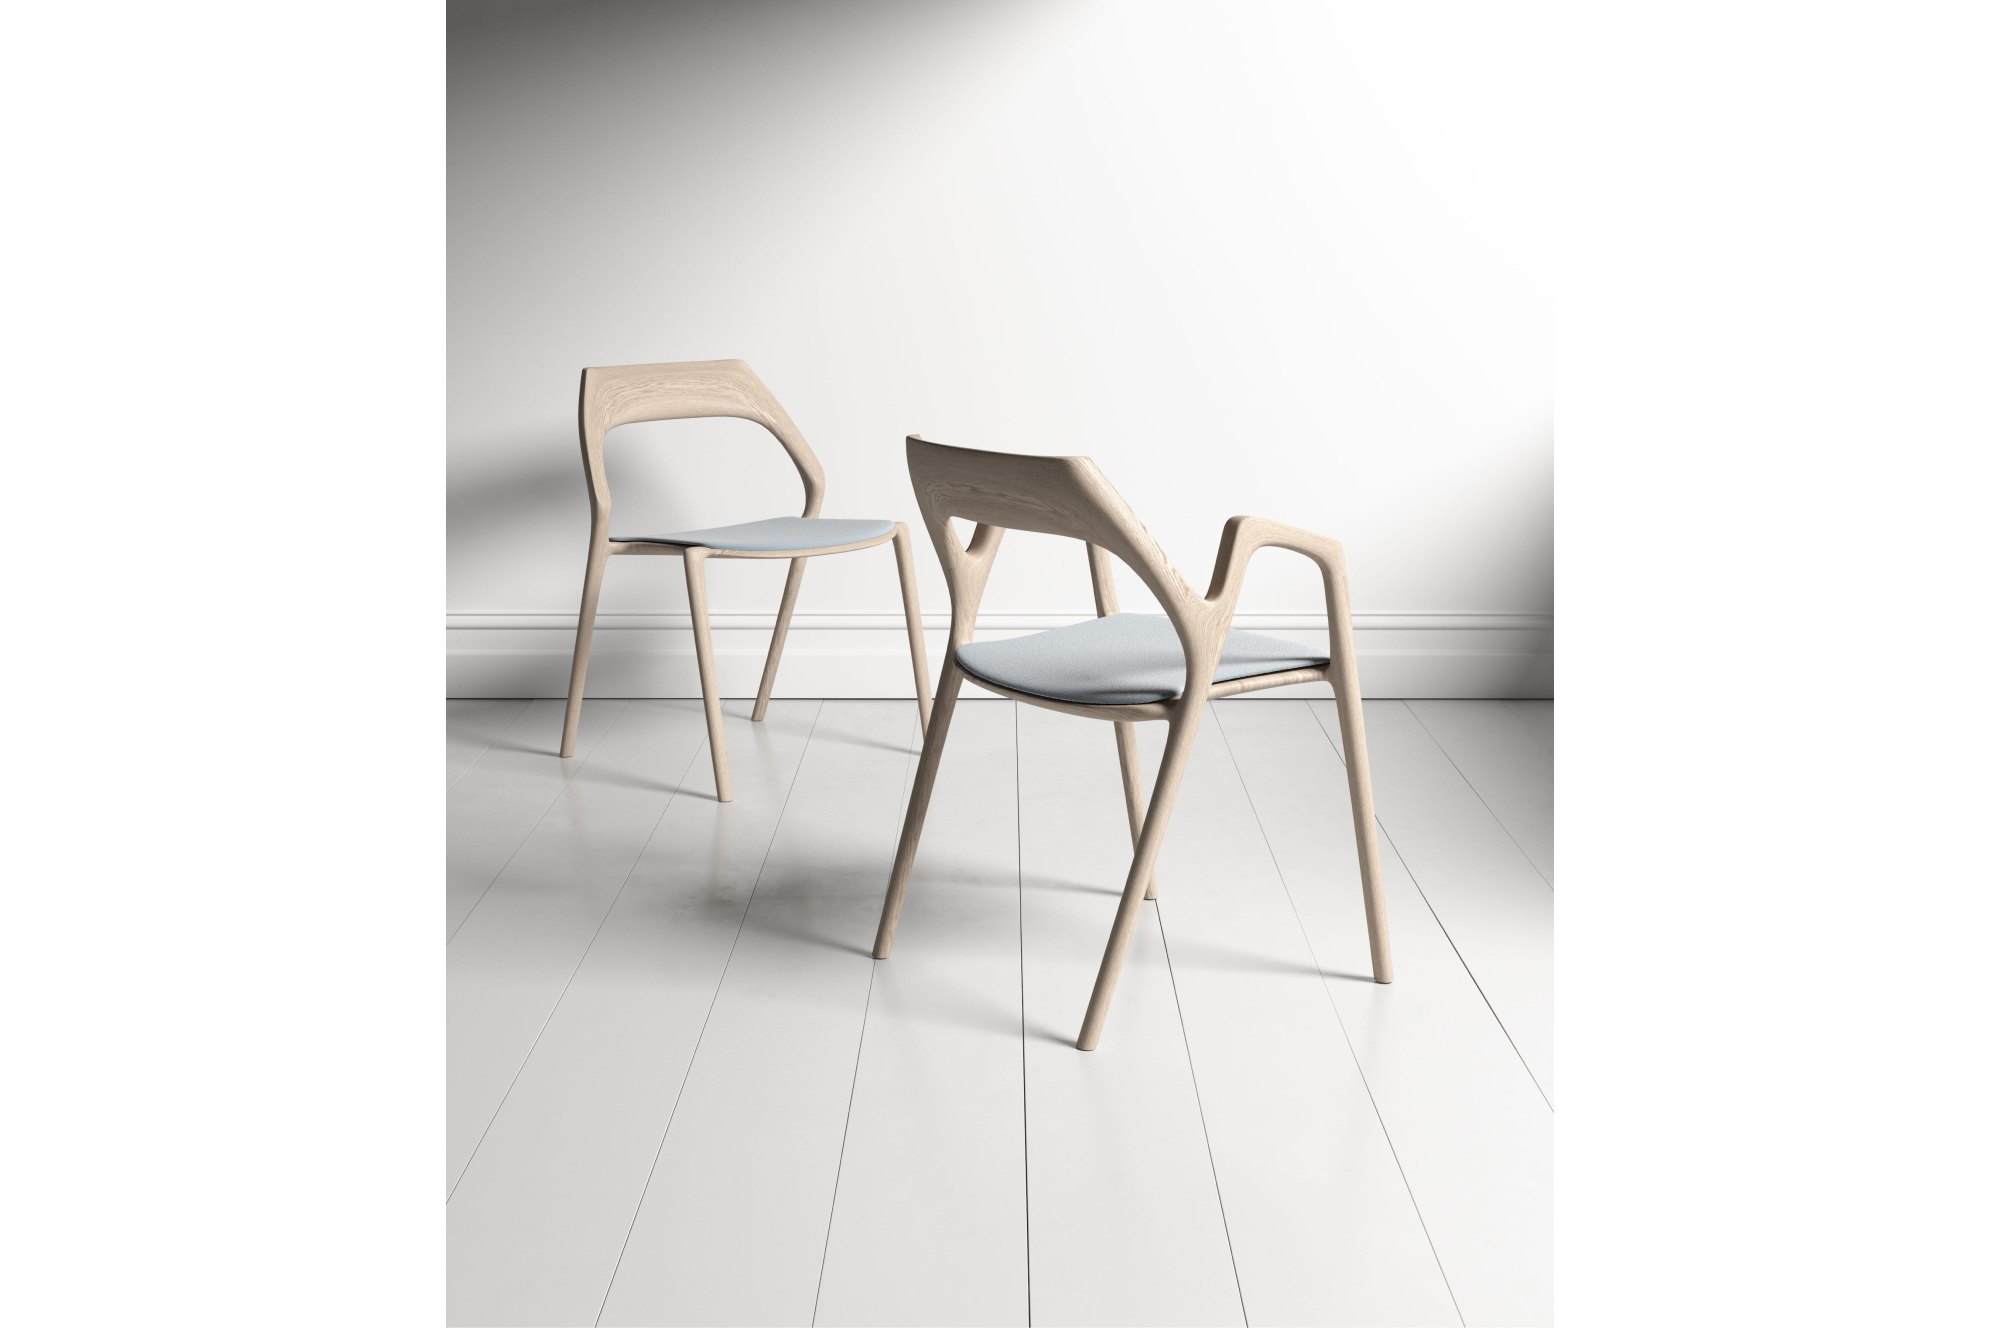 The Ging chair design is inspired by a slingshot